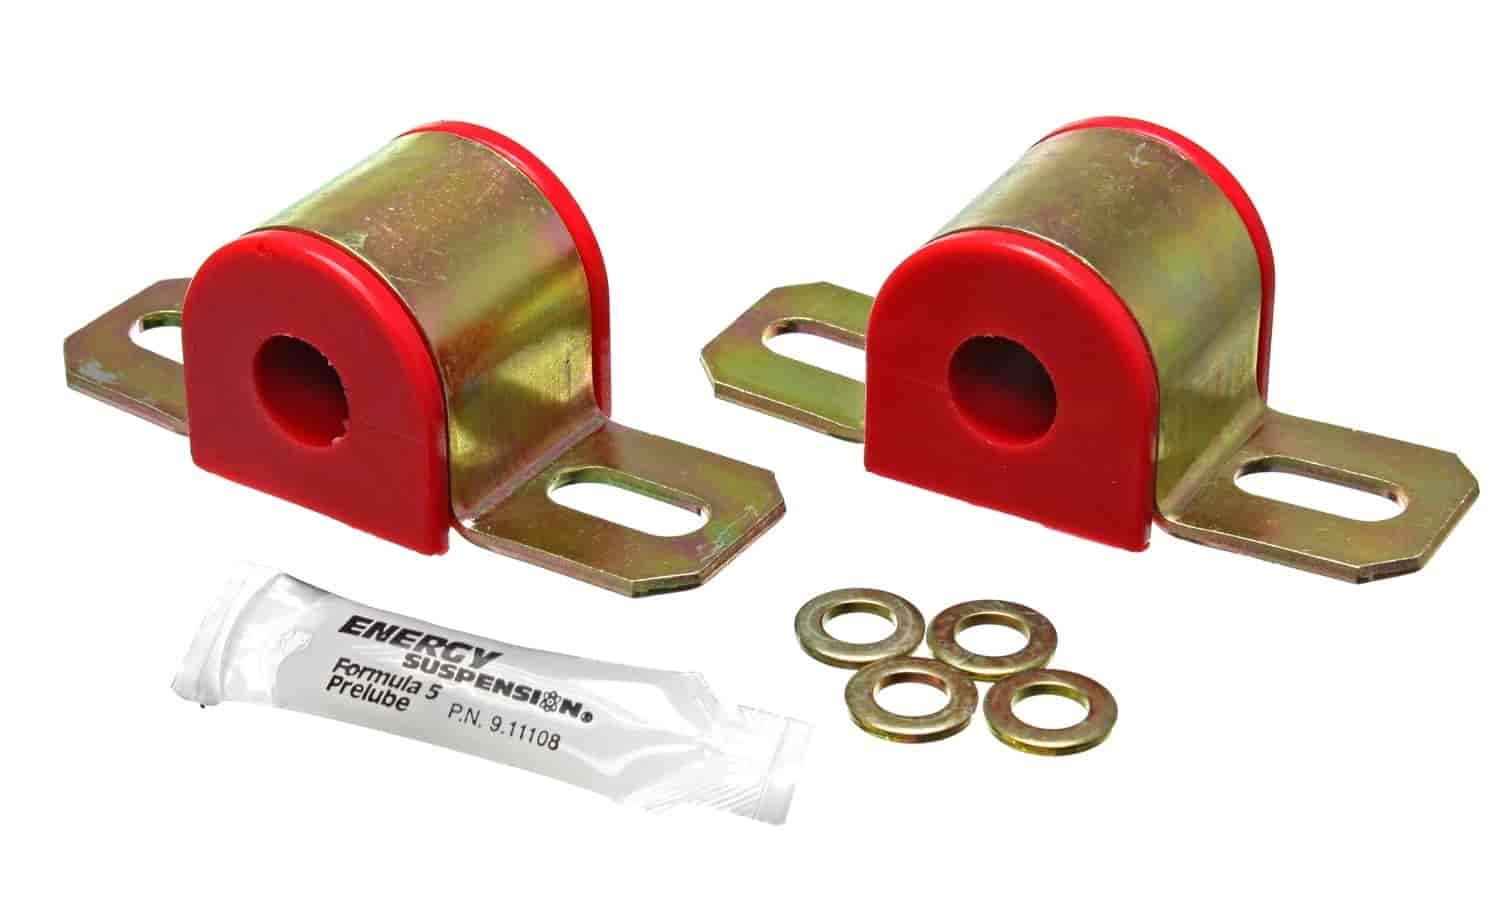 Energy Suspension 9-5104R - Energy Suspension Universal Non-Greaseable Sway Bar Bushings